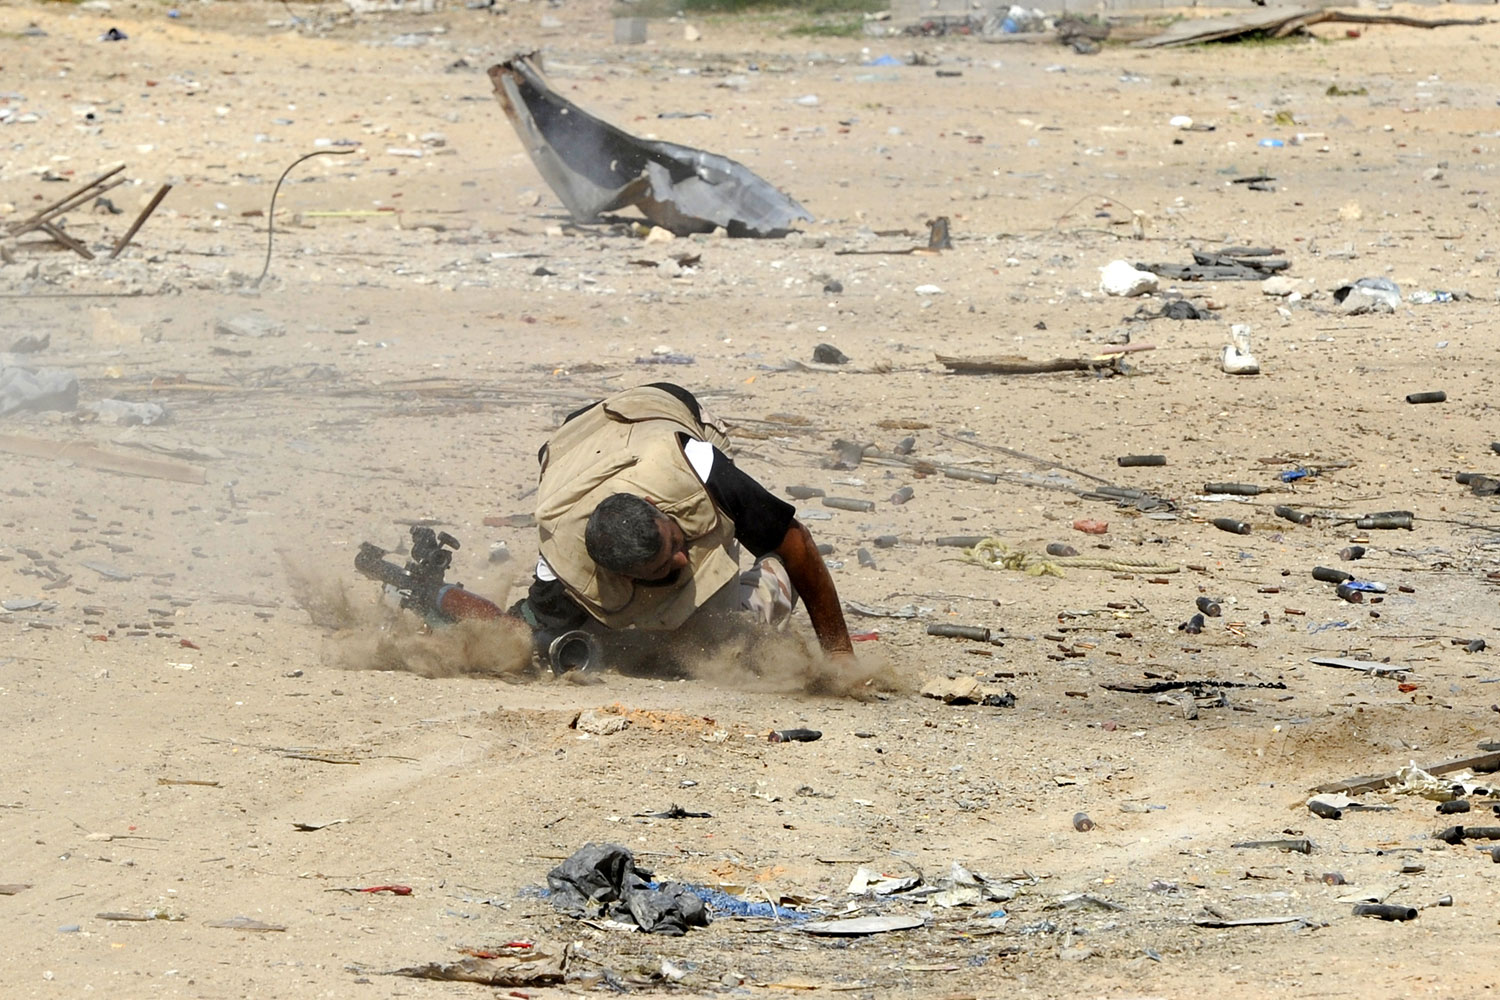 October 18, 2011. A Libyan National Transitional Council (NTC) fighter falls on the ground after being shot during a street battle in Sirt. Fierce street fighting erupted in Muammar Gaddafi's sole remaining bastion of Sirt as streets reverberated with the sound of heavy gunfire, rockets and mortars.